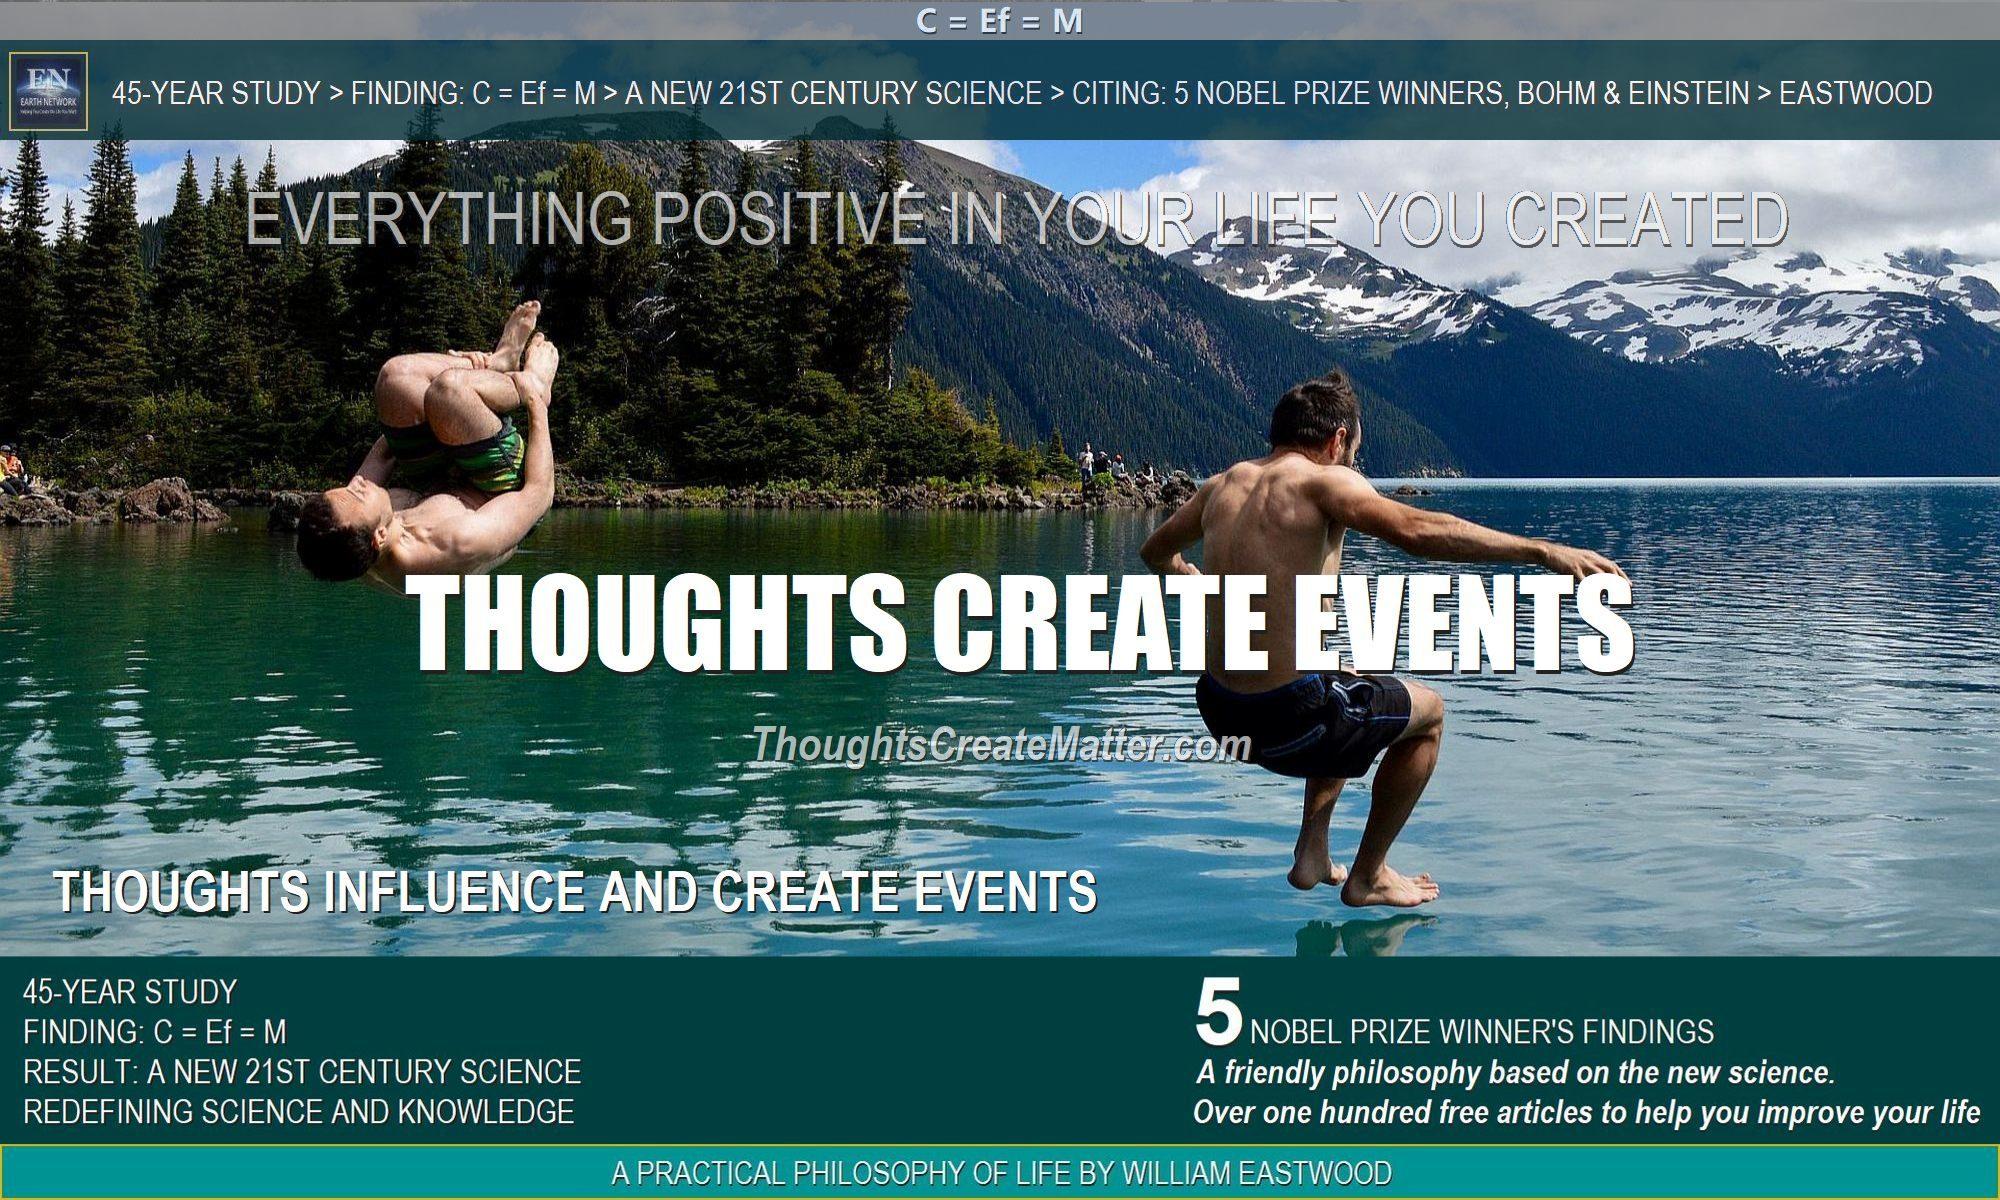 Men jumping in water depict how thoughts can and do affect events and create matter and reality.